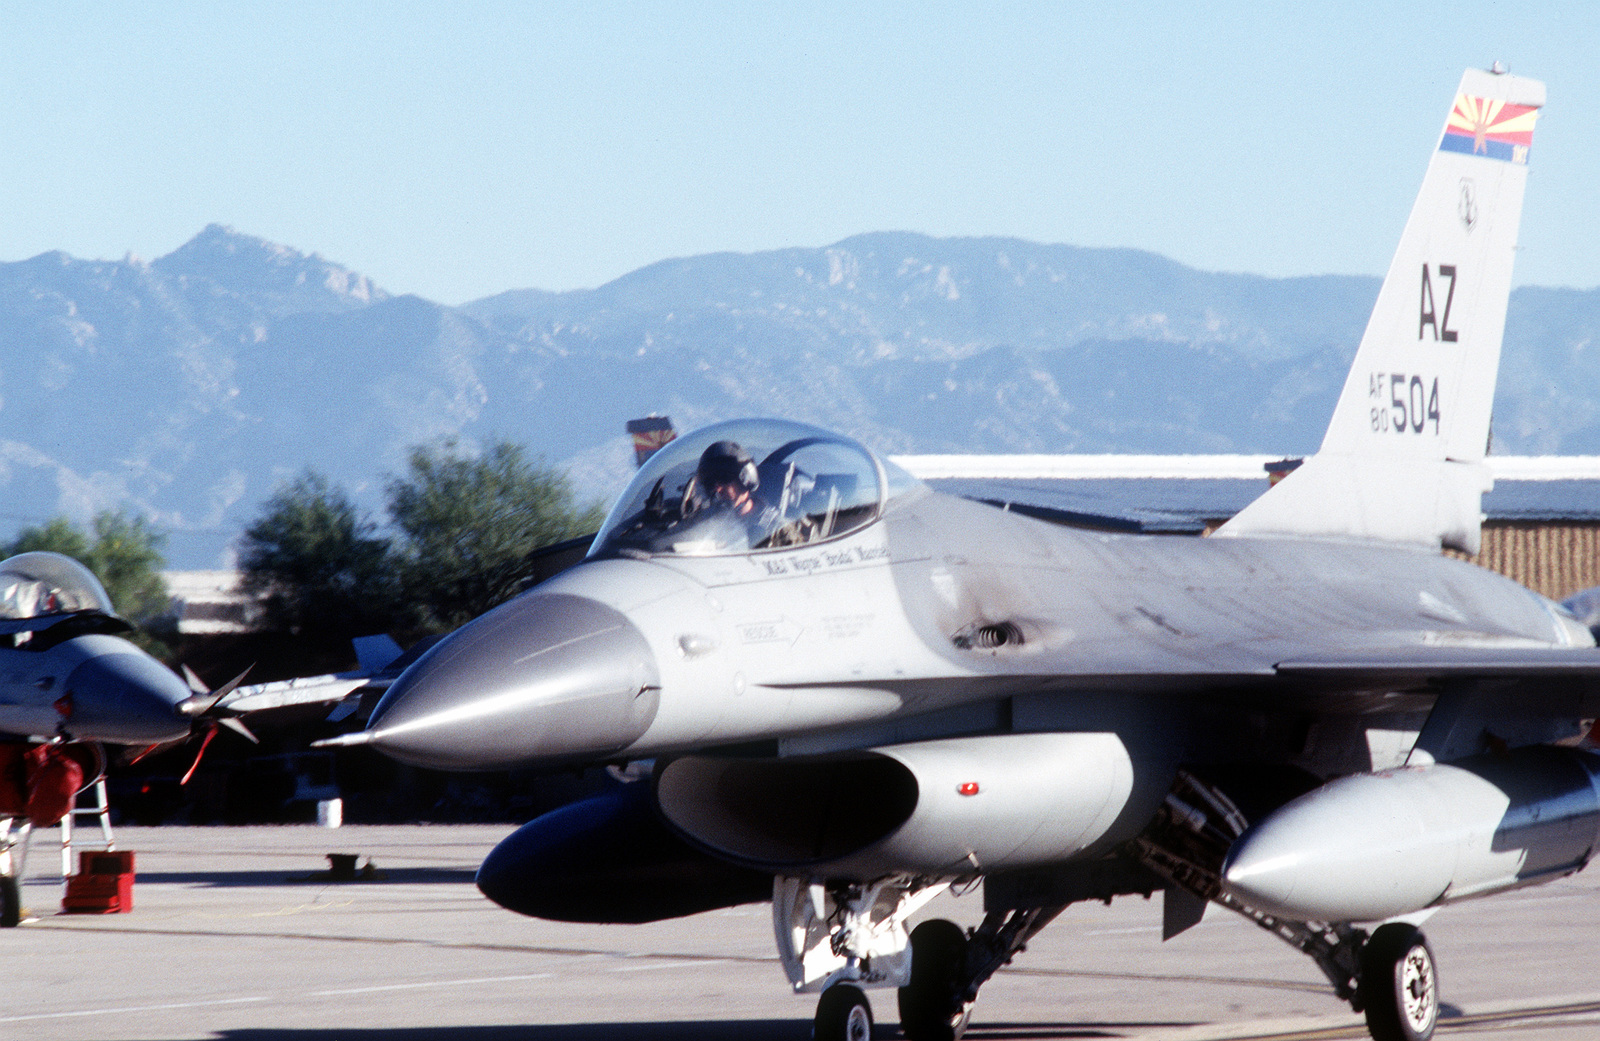 An F-16 from the 162nd Fighter Wing is awaiting taxi clearance at